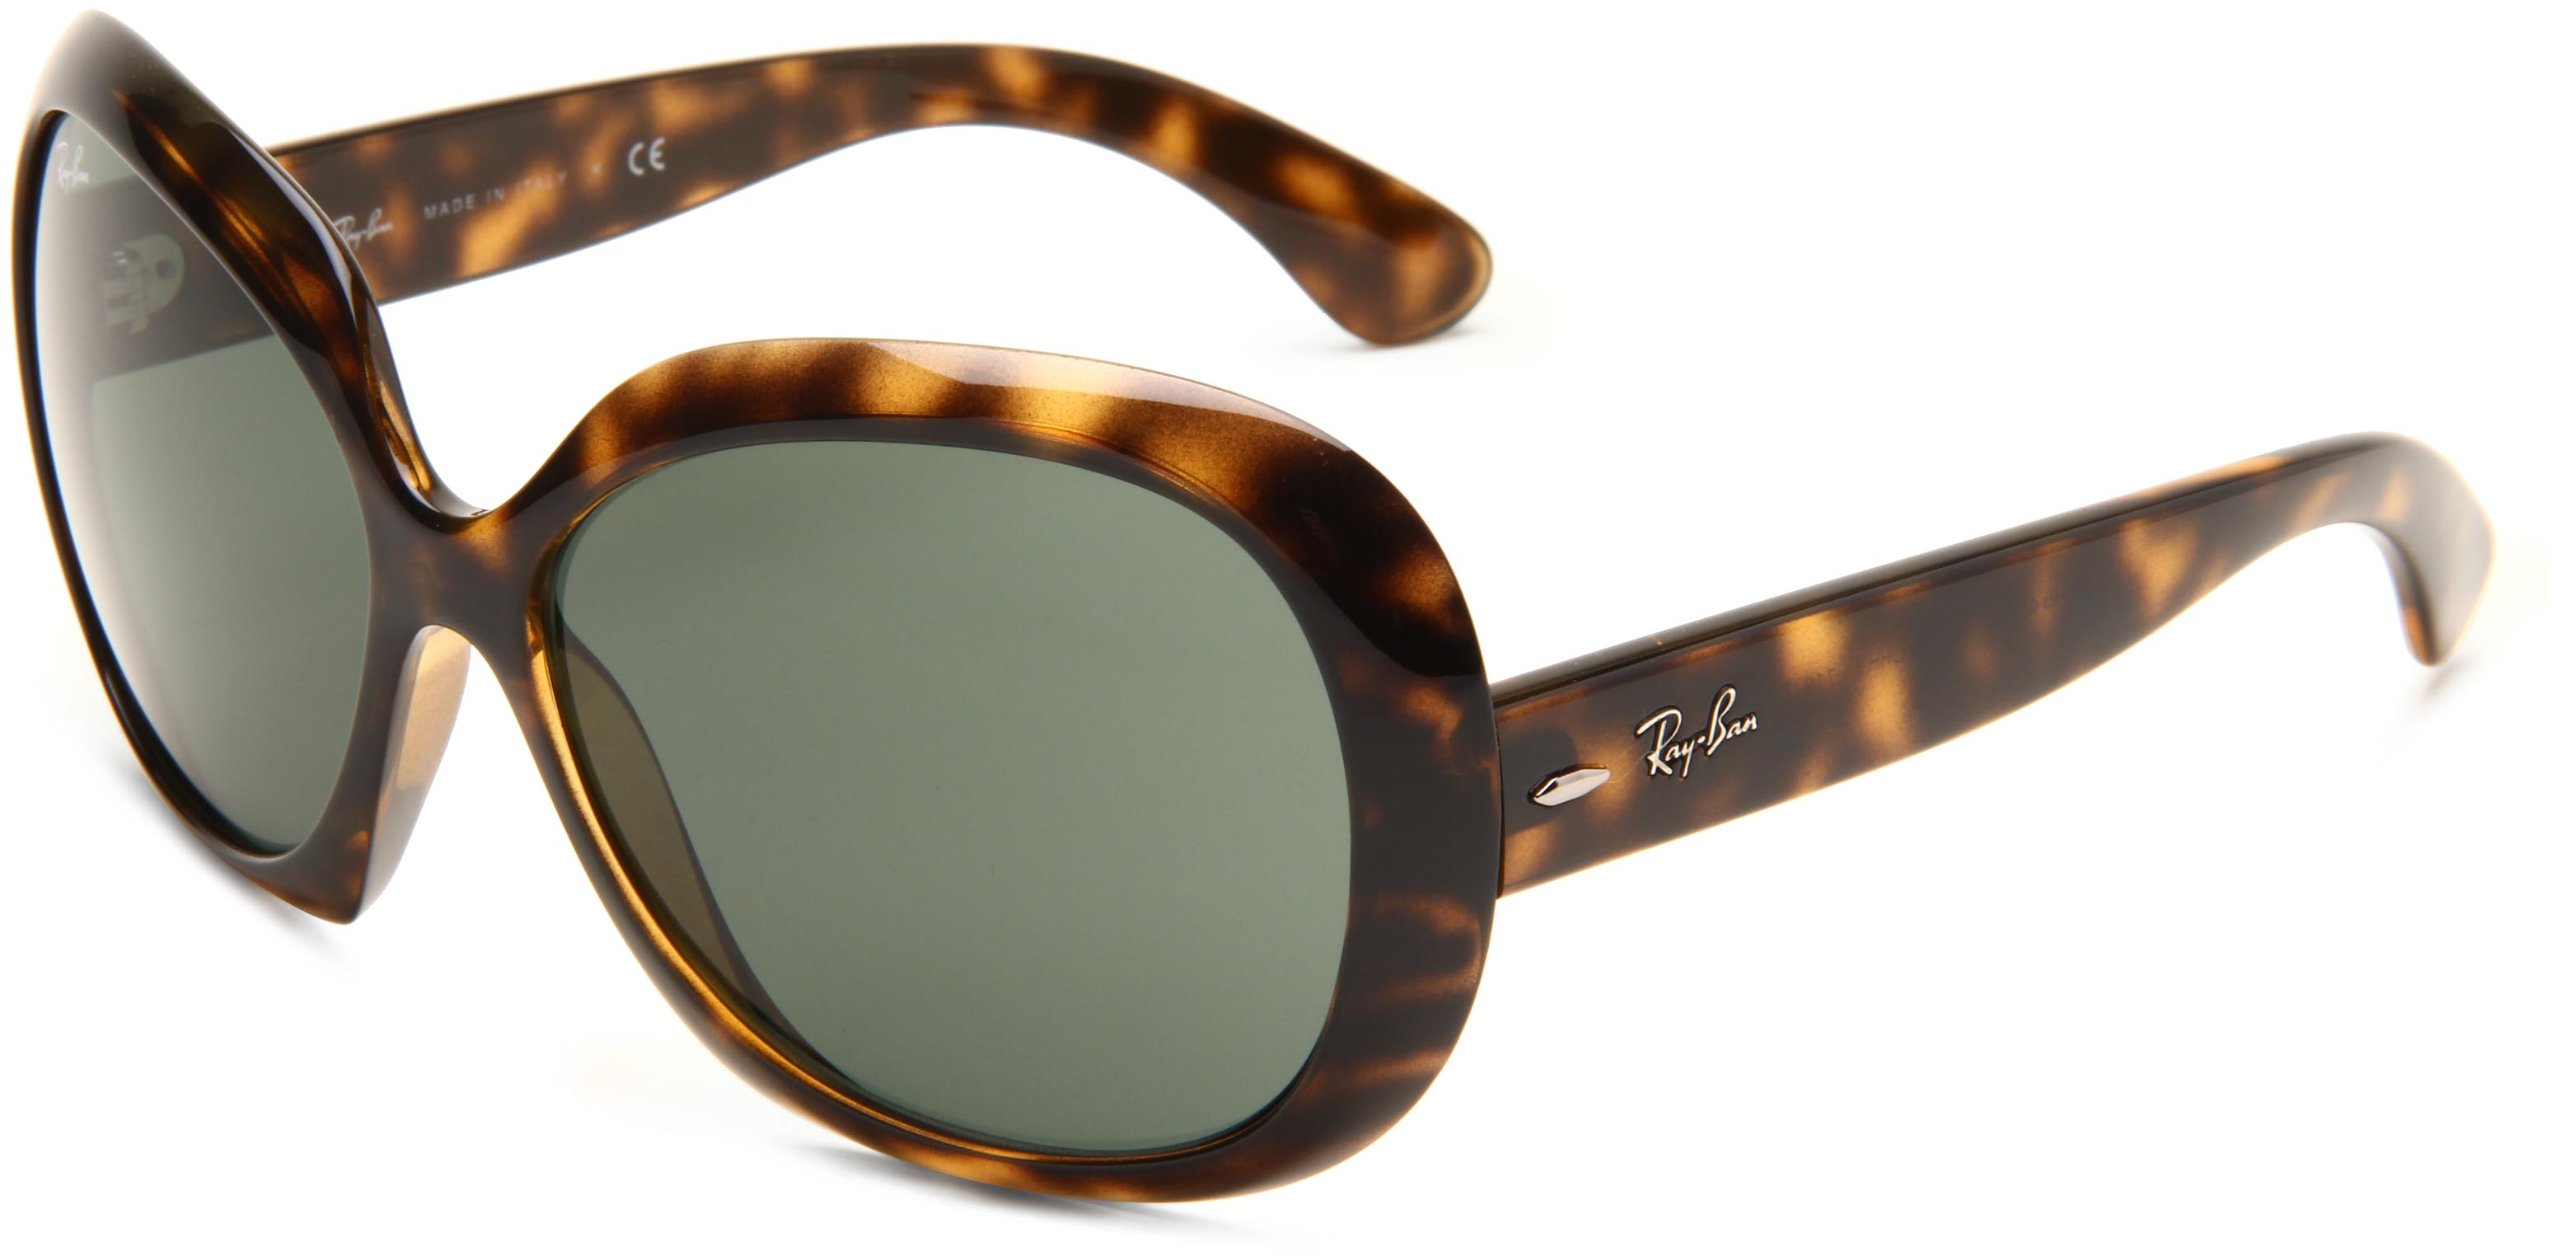 RAY-BAN RB4098 Jackie Ohh II Oversized Sunglasses, Light Havana/Dark Green, 60 mm by RAY-BAN